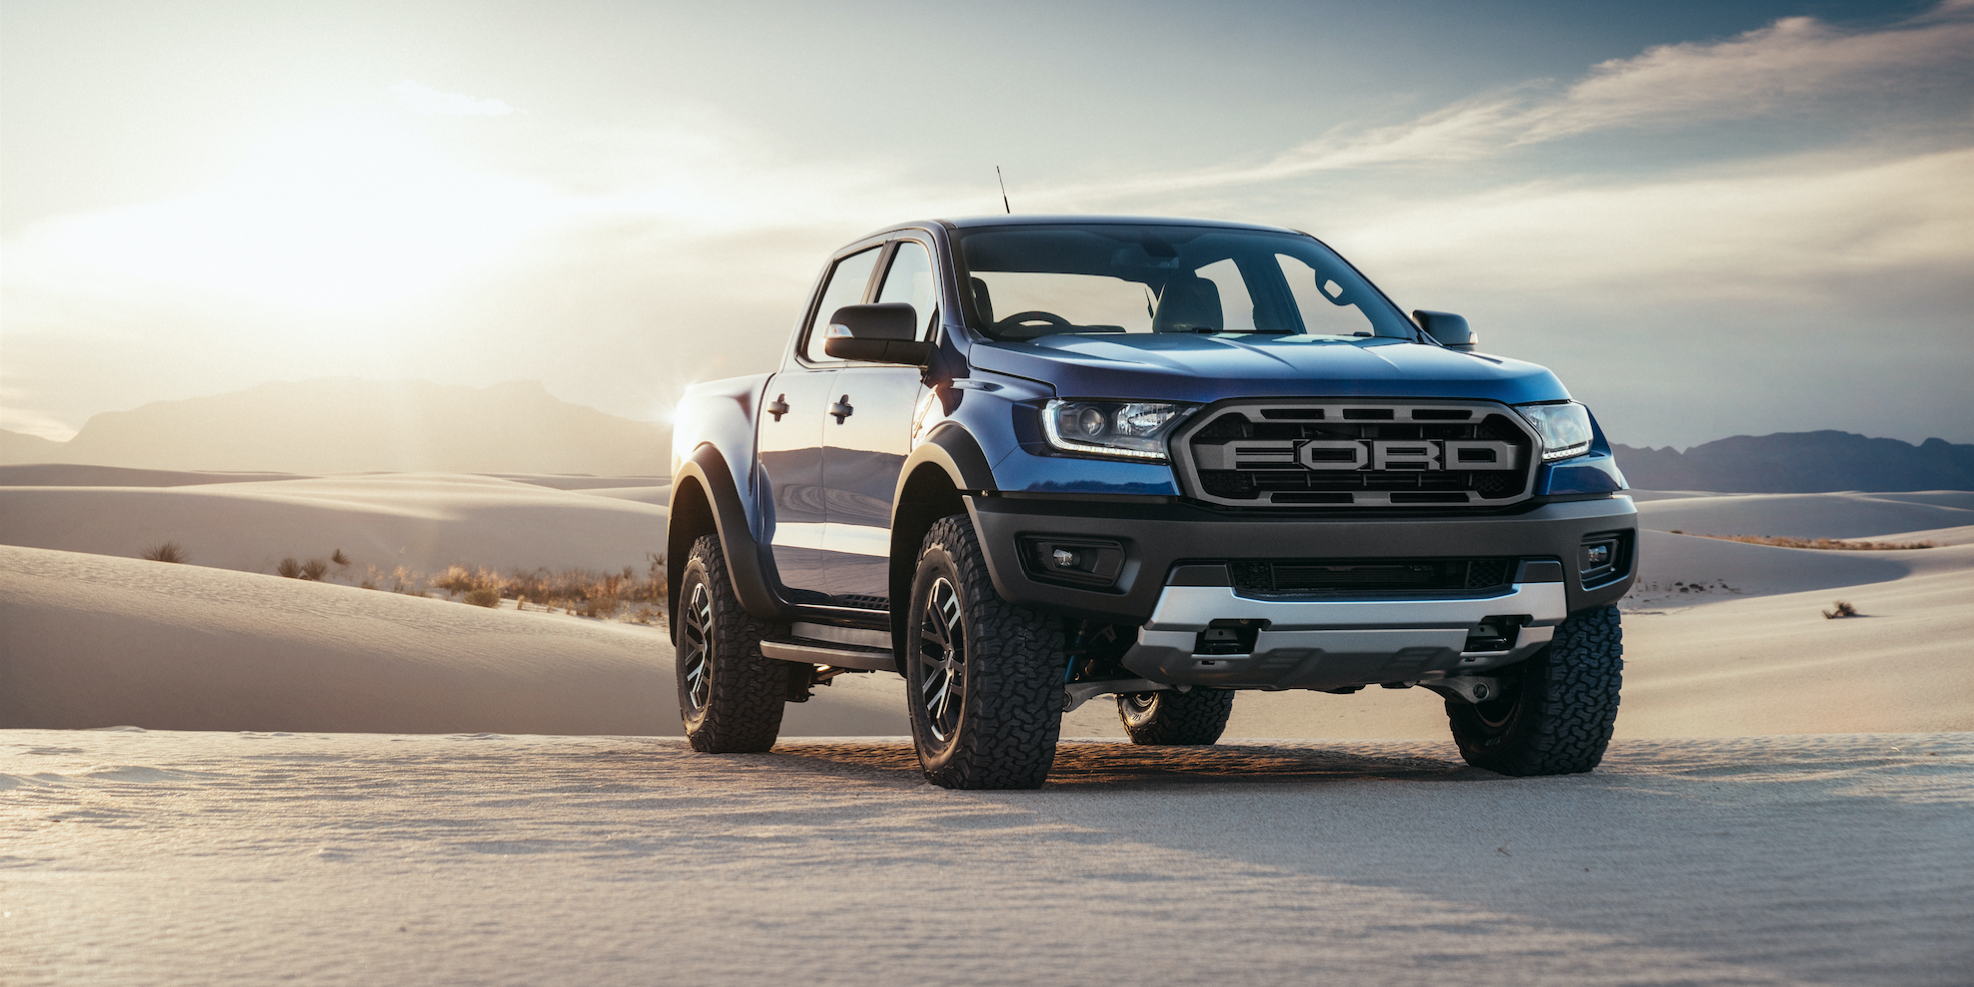 2019 Ford Ranger Raptor Info, Pictures, and Pricing - New Ranger Raptor Revealed